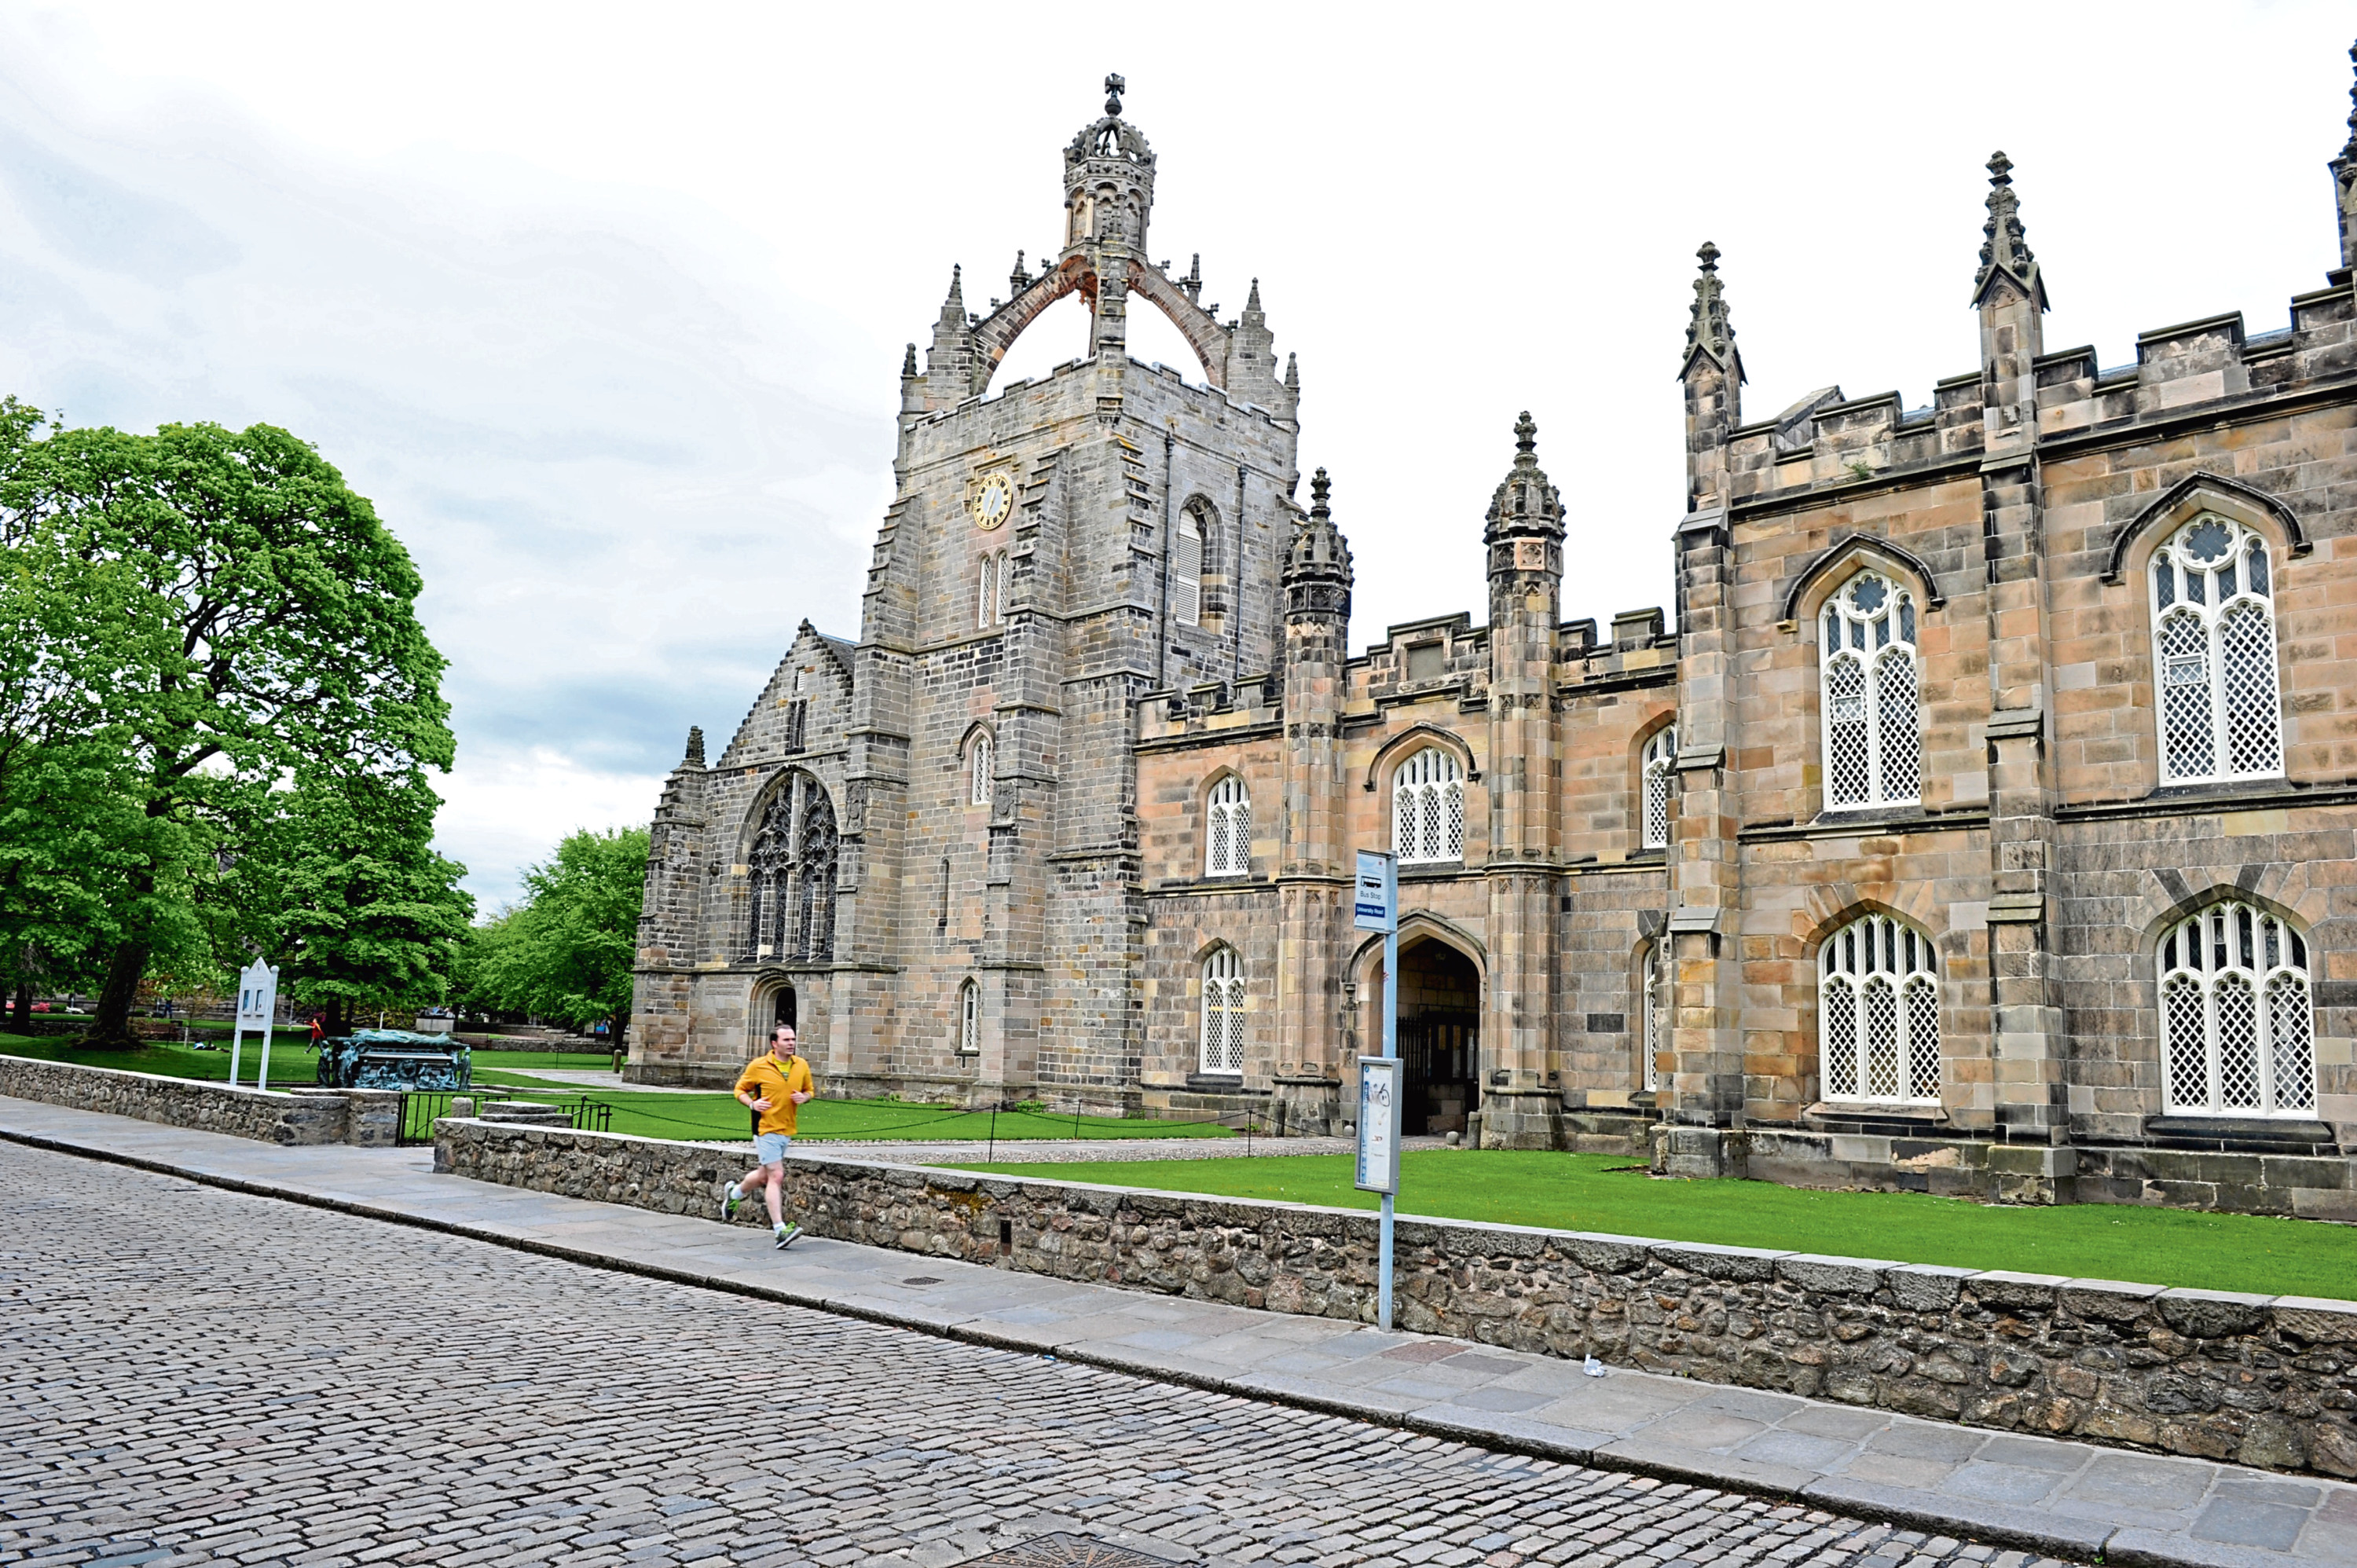 The survey has been launched by the University of Aberdeen